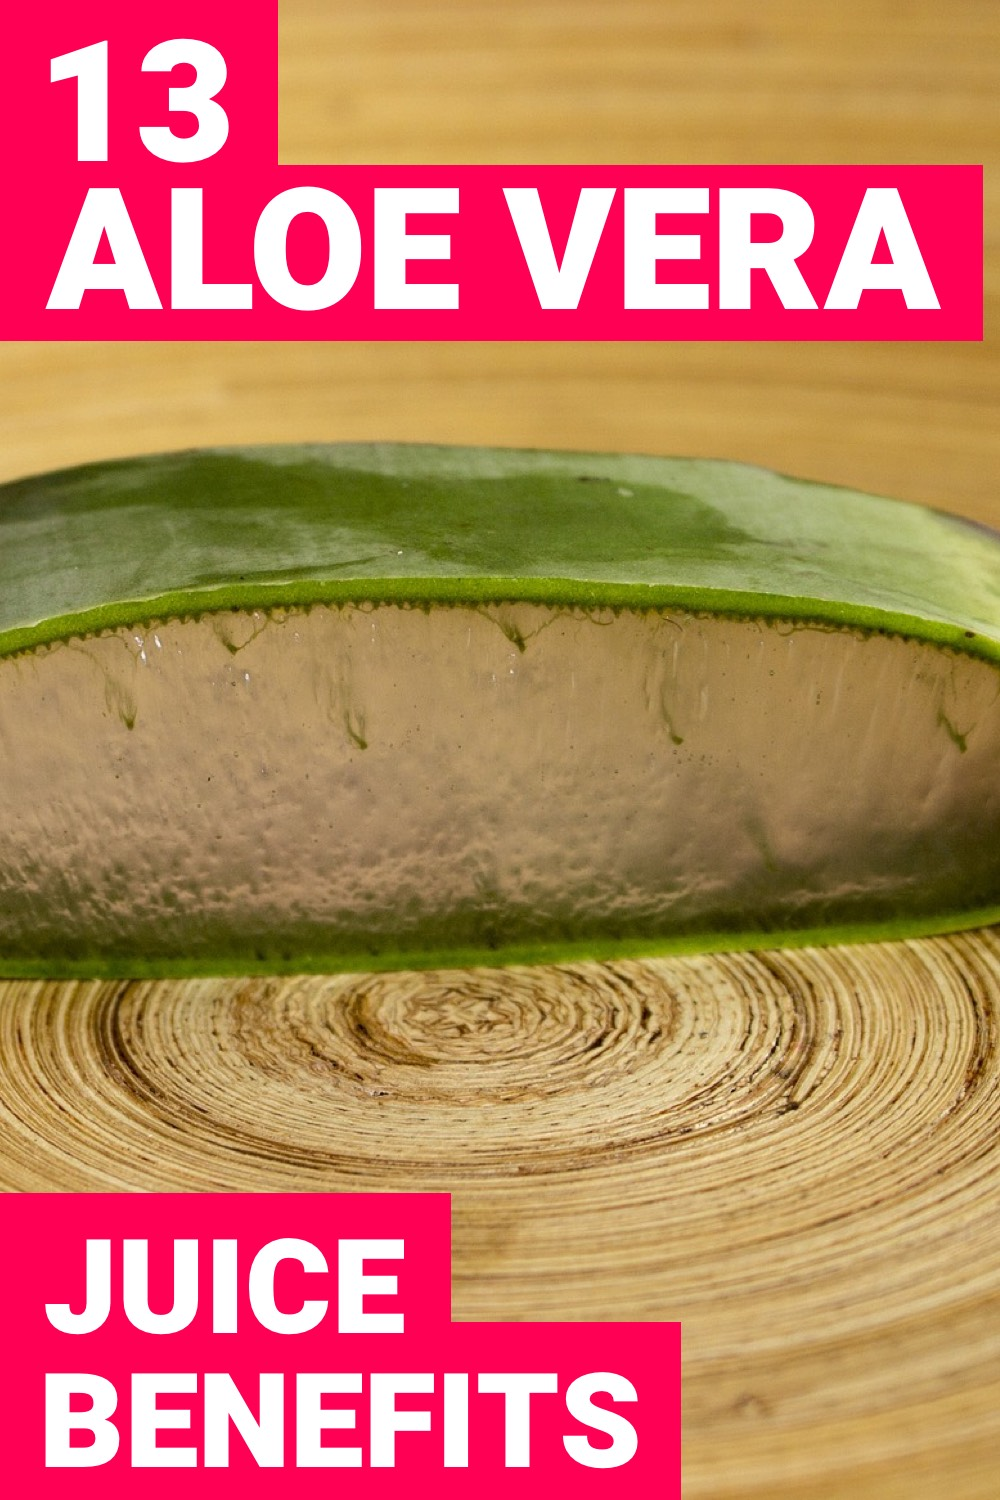 Is drinking aloe vera juice going to benefit you at all? Here are 13 benefits of aloe vera juice that are going to have an immediate impact on your body.